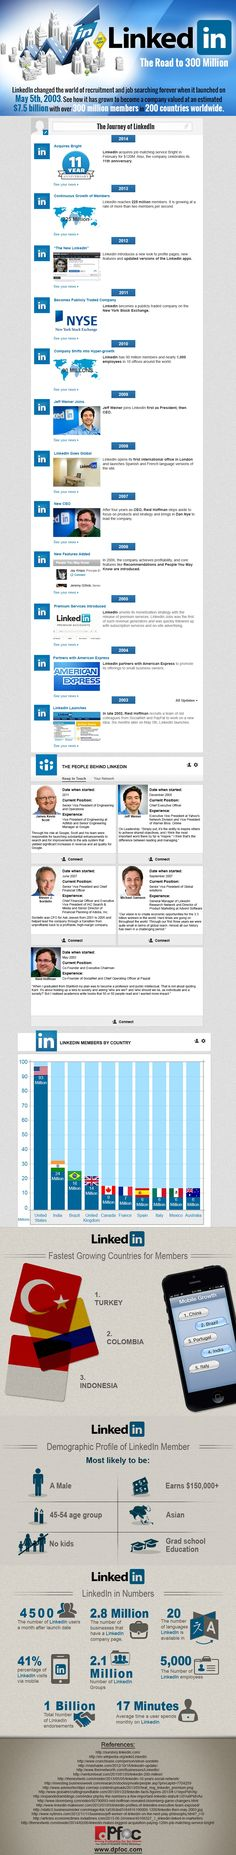 The Top 10 LinkedIn Facts and Figures in 2014 You Need To Know - Jeffbullas's Blog